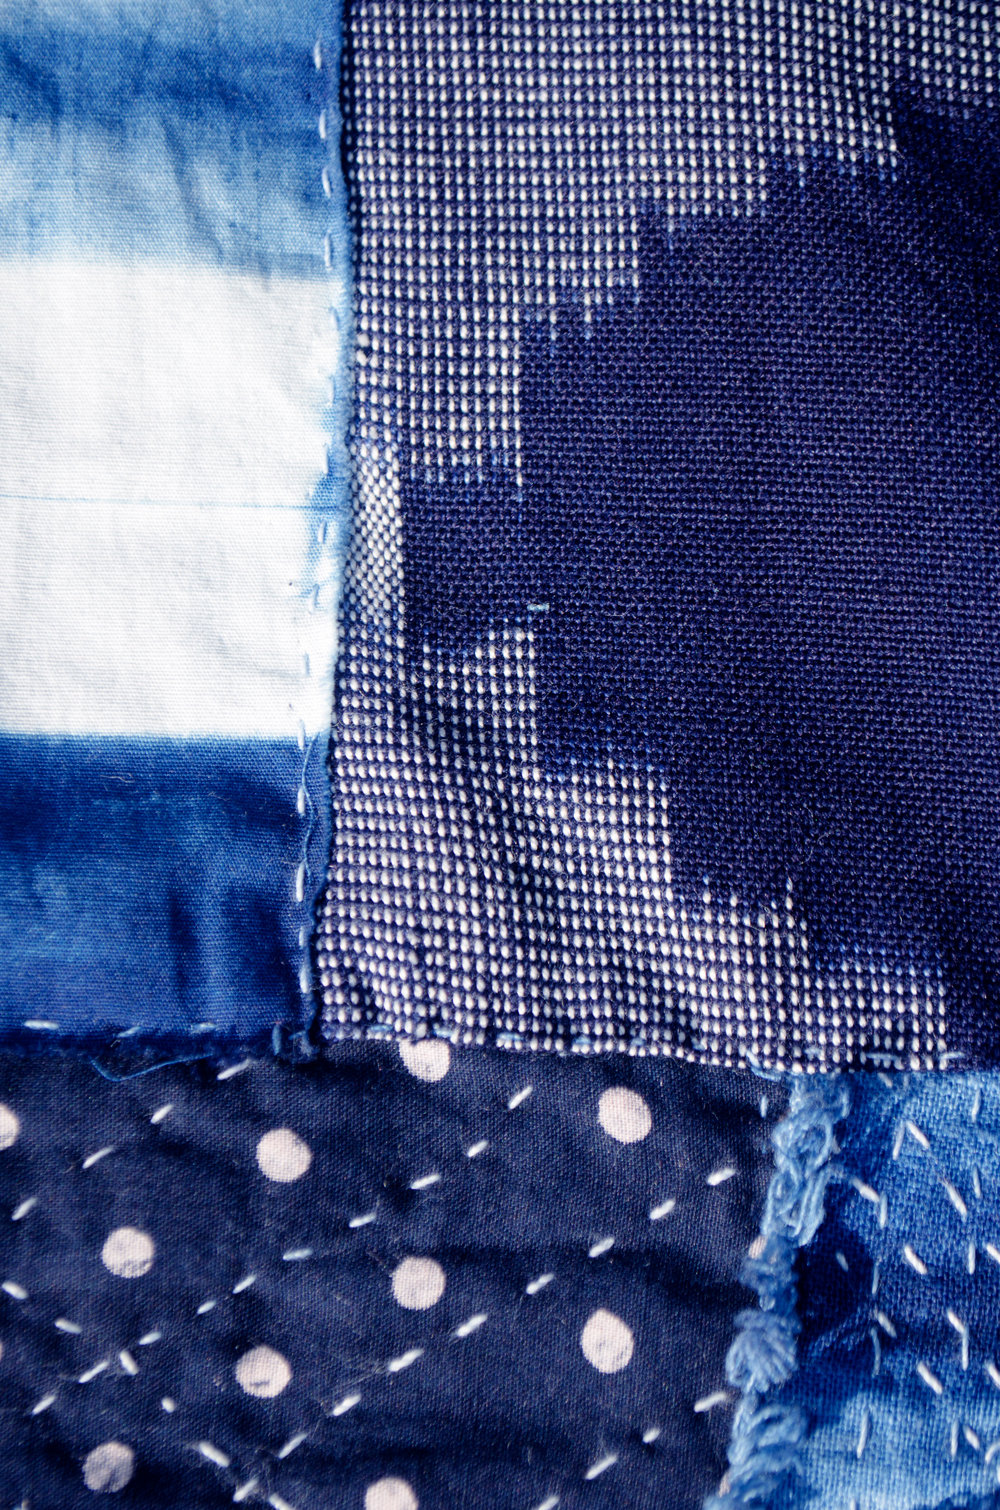 Stitching around resist dyed indigo dots